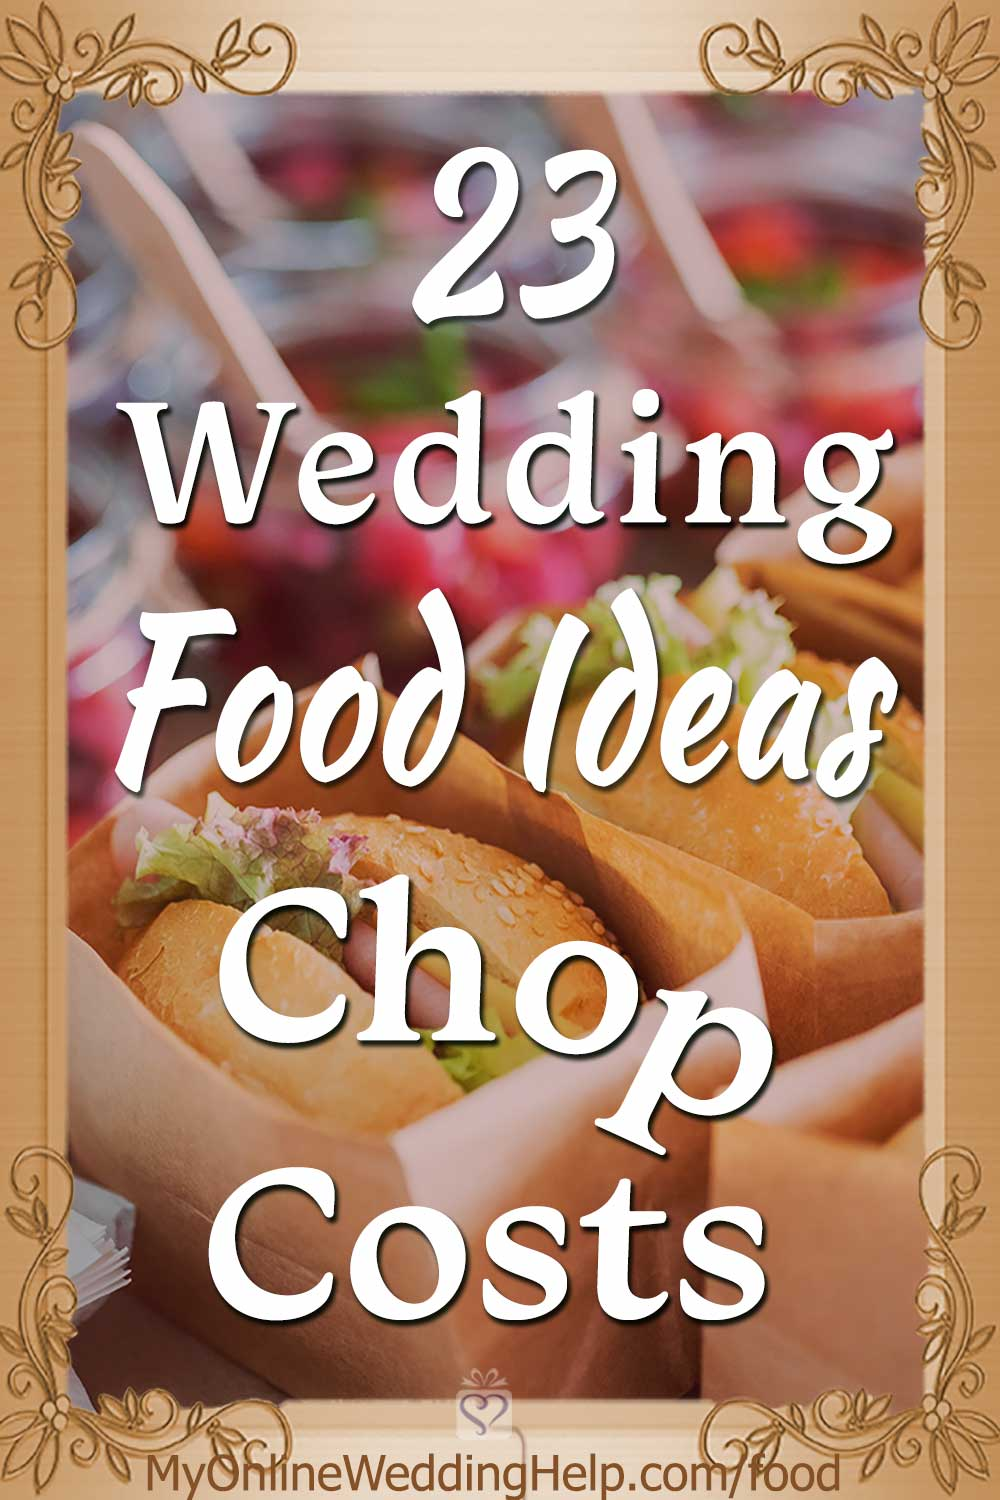 Wedding food ideas on a budget